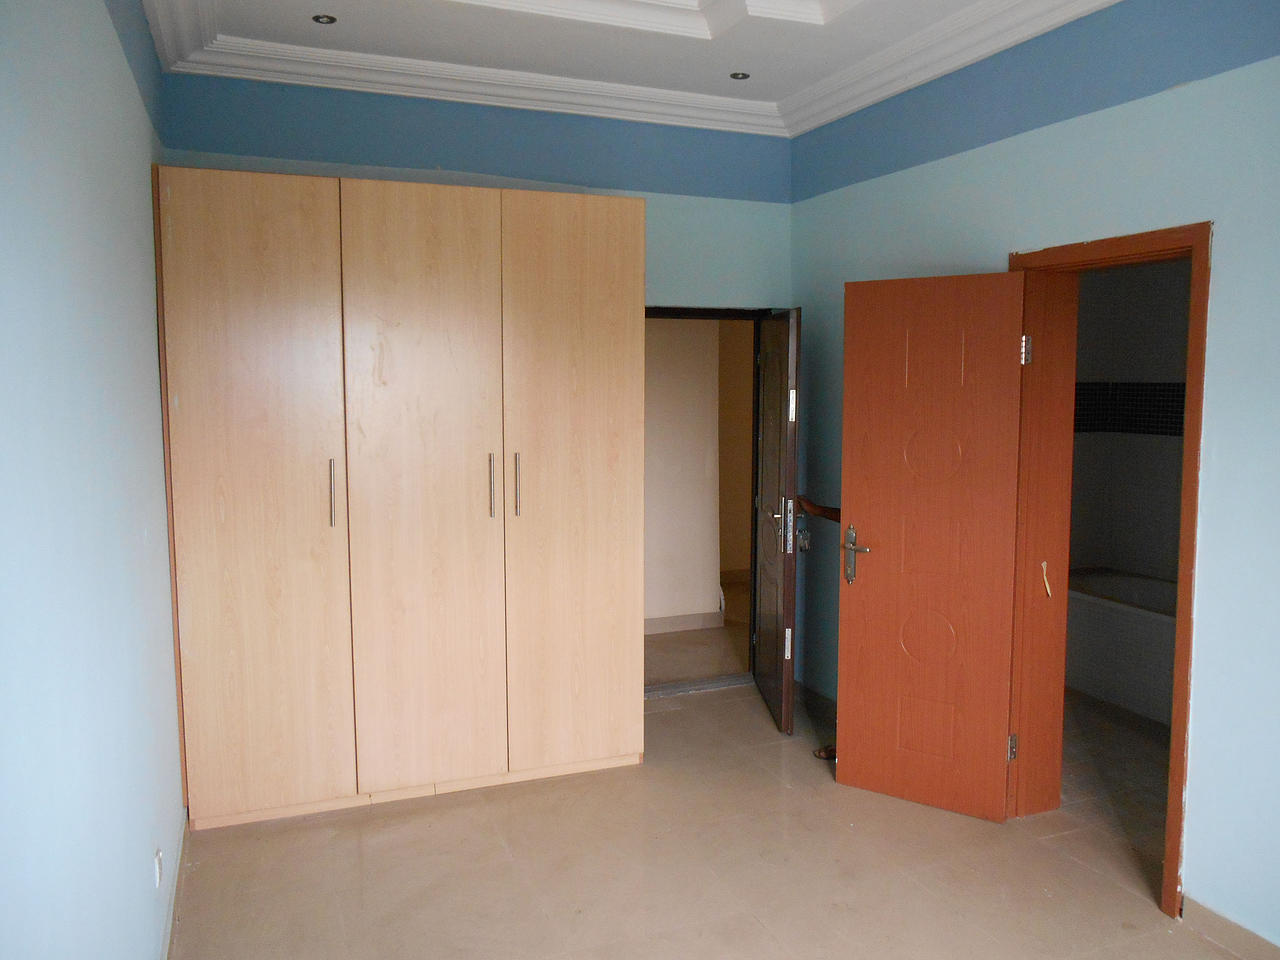 Newly built 24 units of executive apartments for sale for 24 unit apartment building for sale